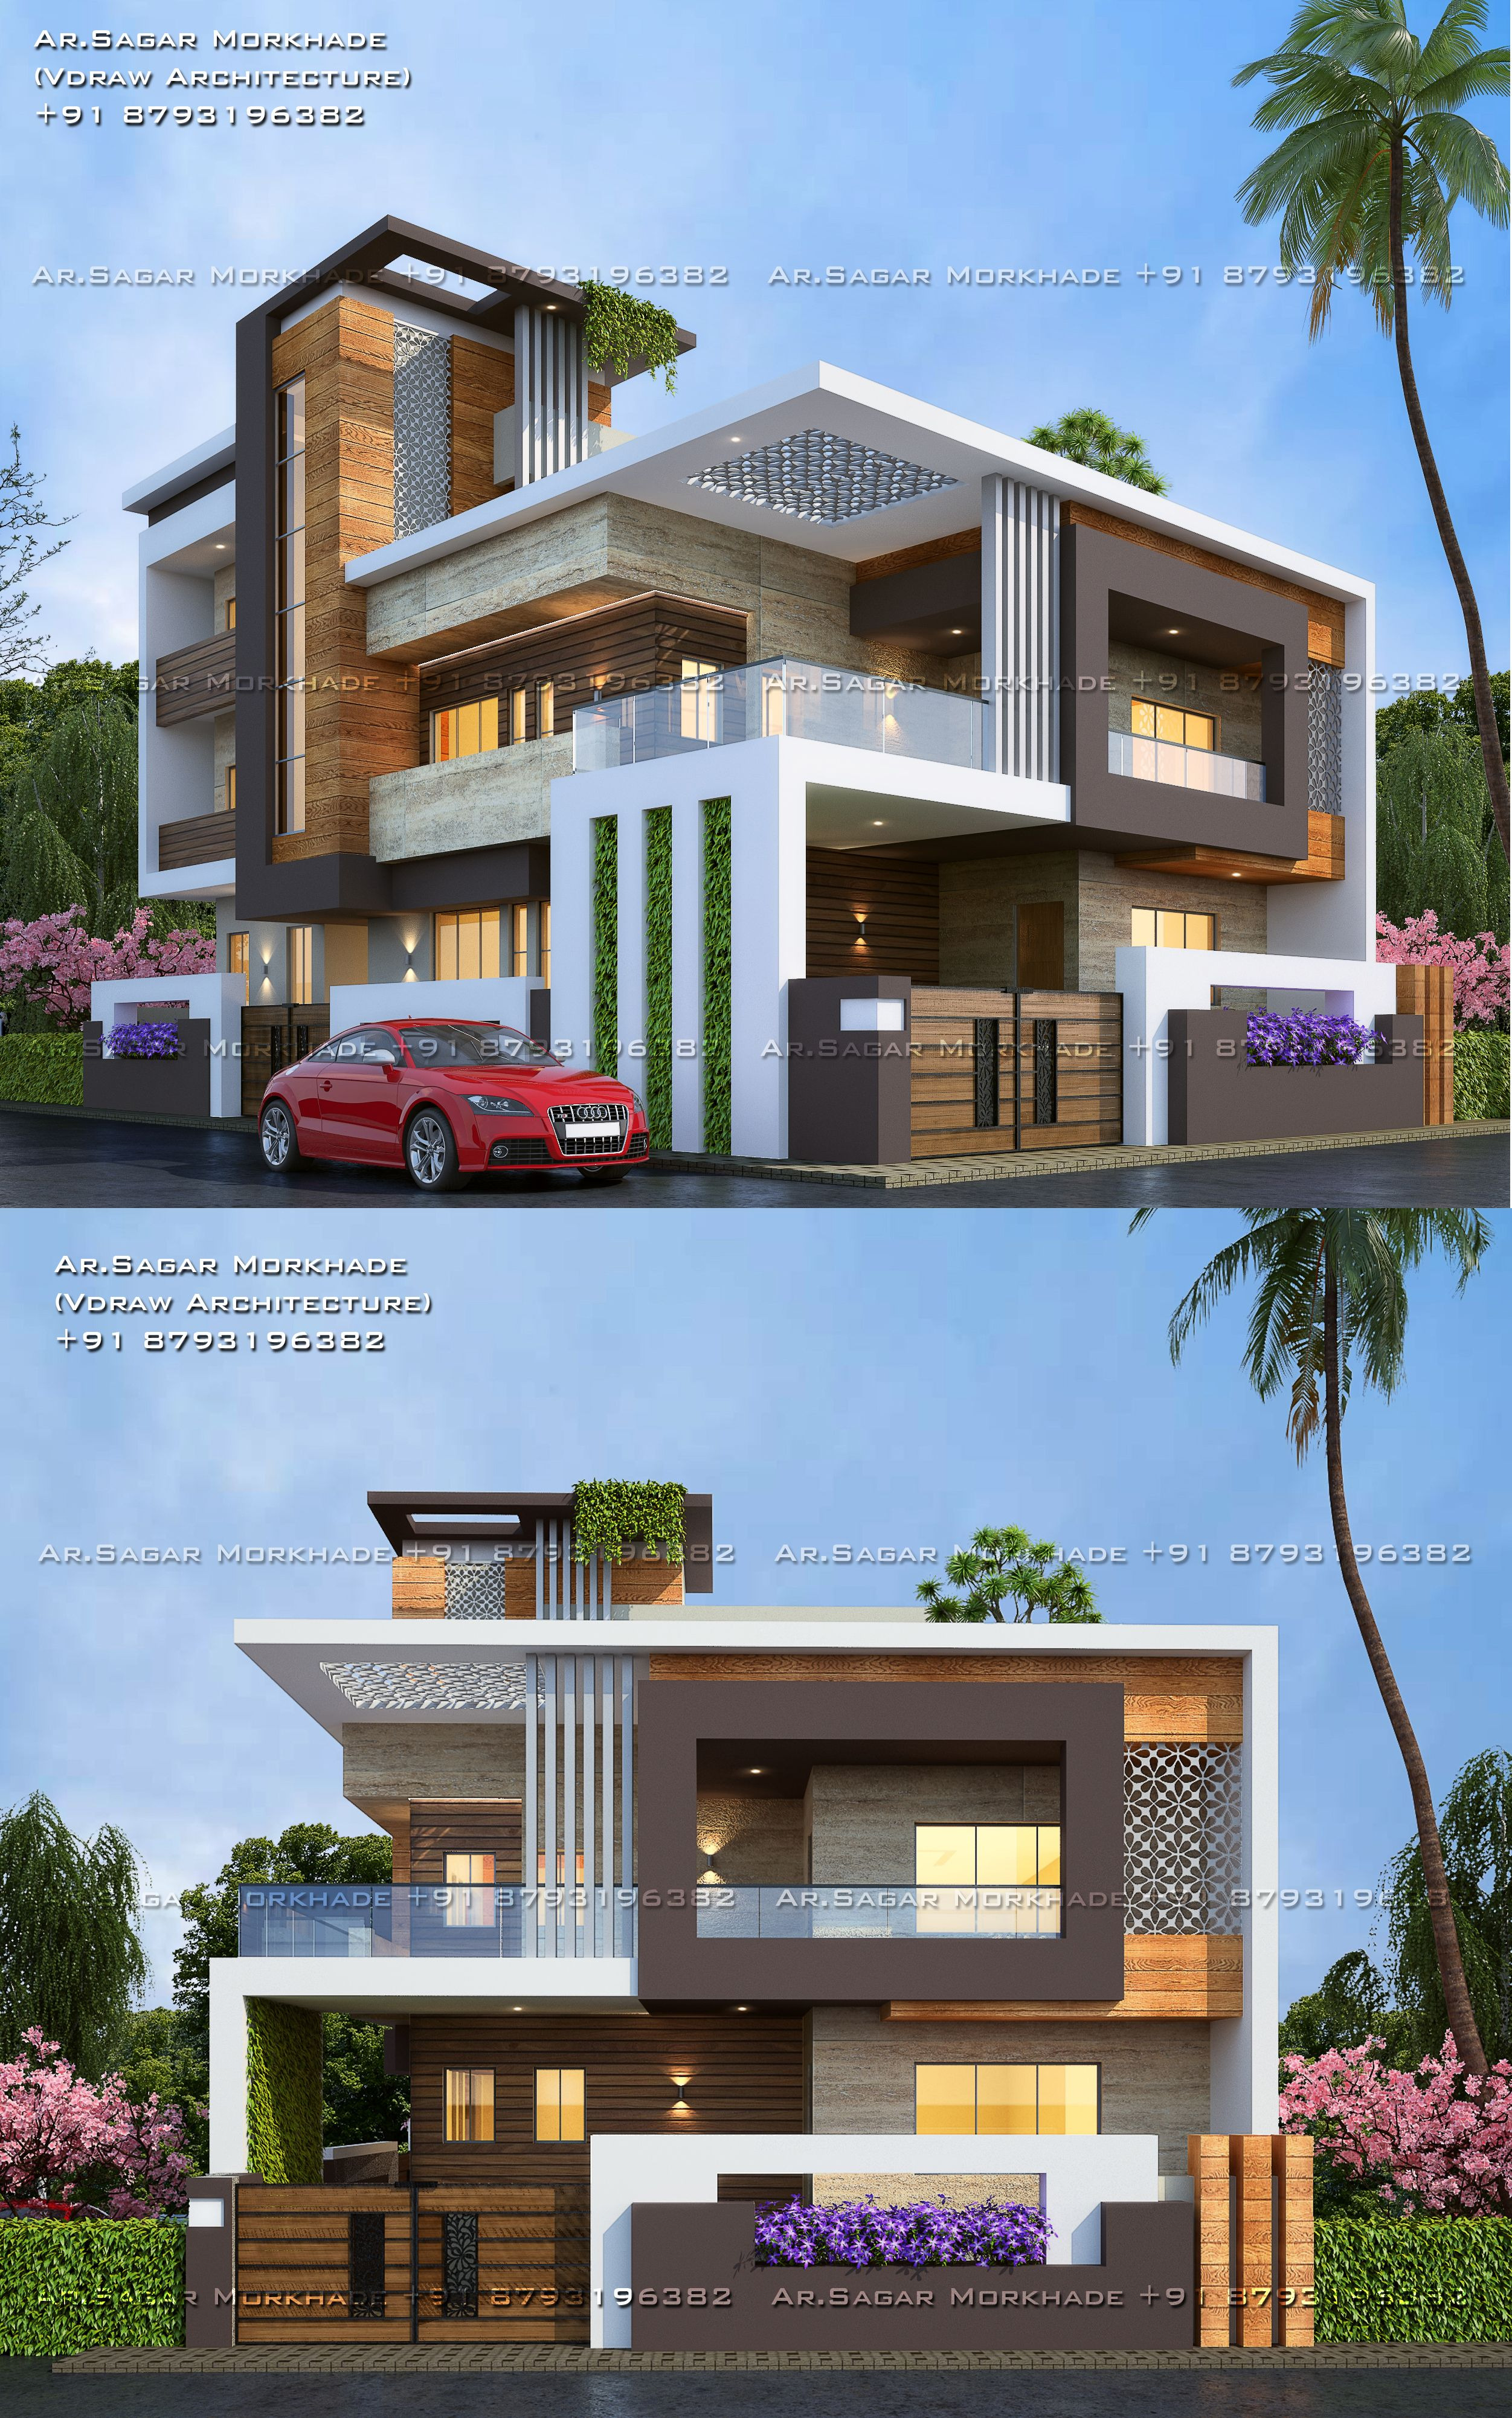 Architect Design for Home Images New Pin by Mrsbuilderscbe On House Designs Exterior